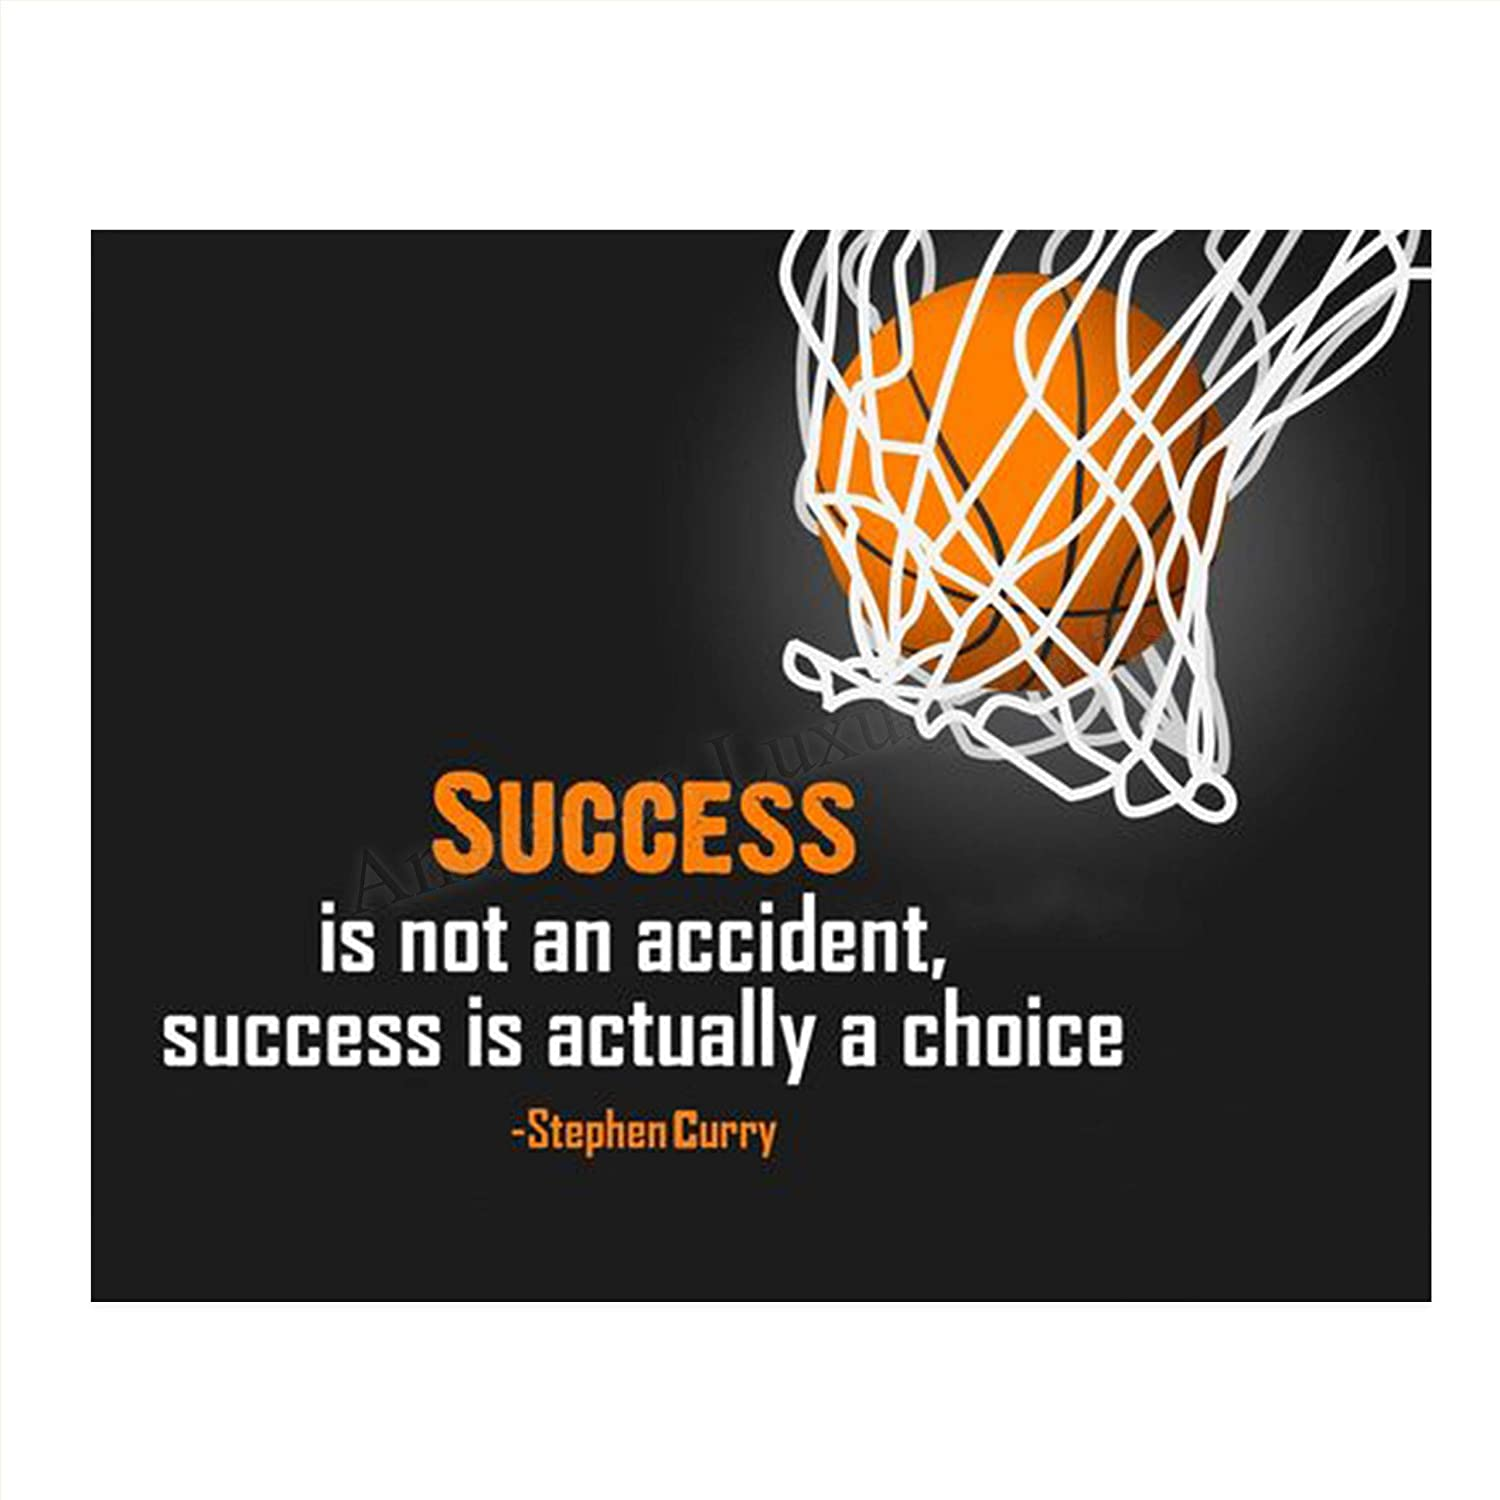 """Stephen Curry Quotes-""""Success is a Choice""""- 10 x 8""""-Motivational Basketball Poster Print-Ready to Frame. Inspirational Wall Art. Home Decor-Office Décor. Perfect for Locker Room-Gym-Bedroom."""